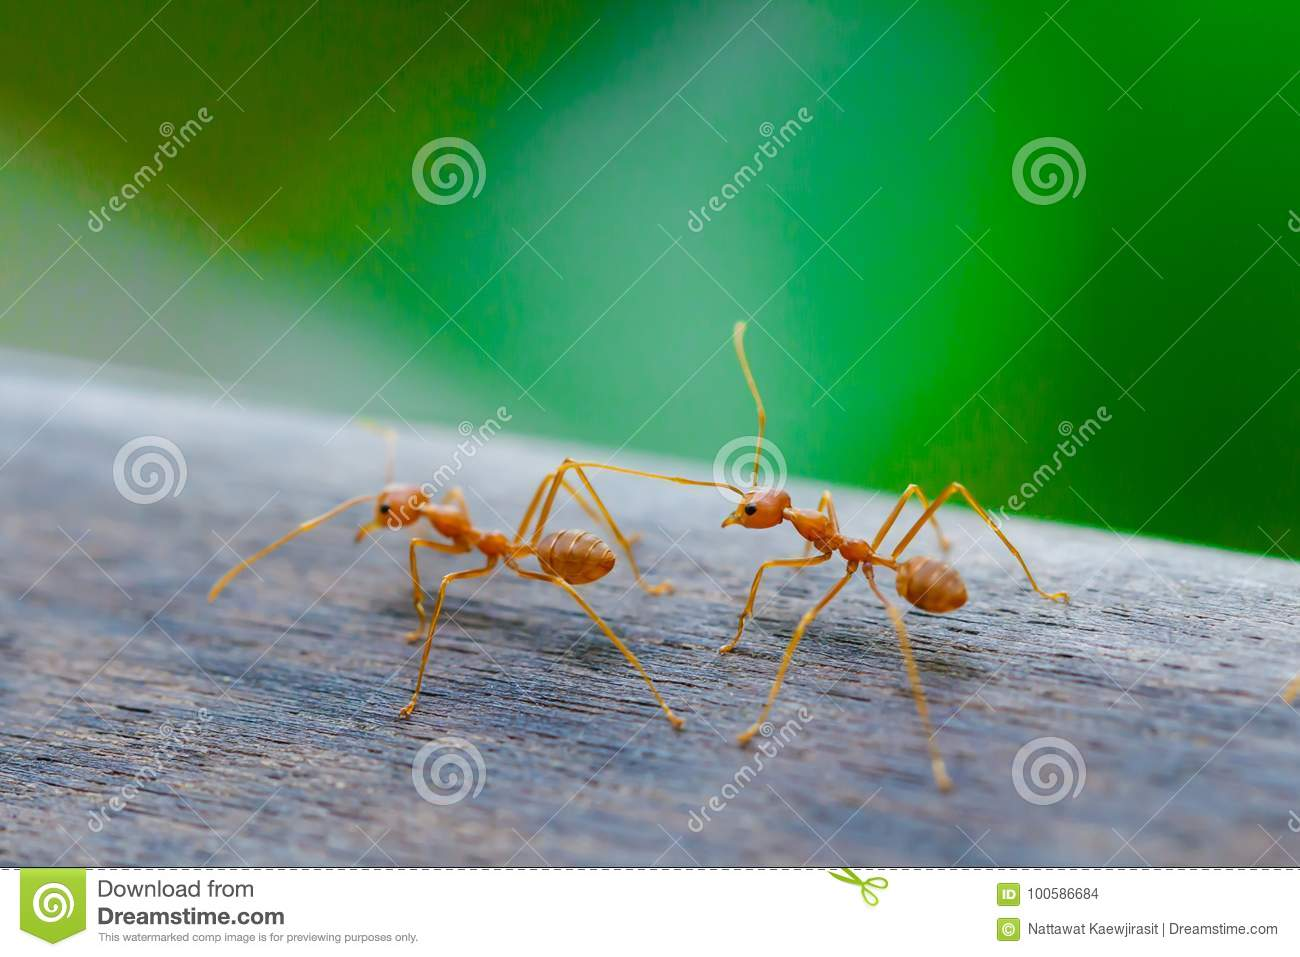 Ant Standing On Wooden Floor Stock Photo - Image: 100586684